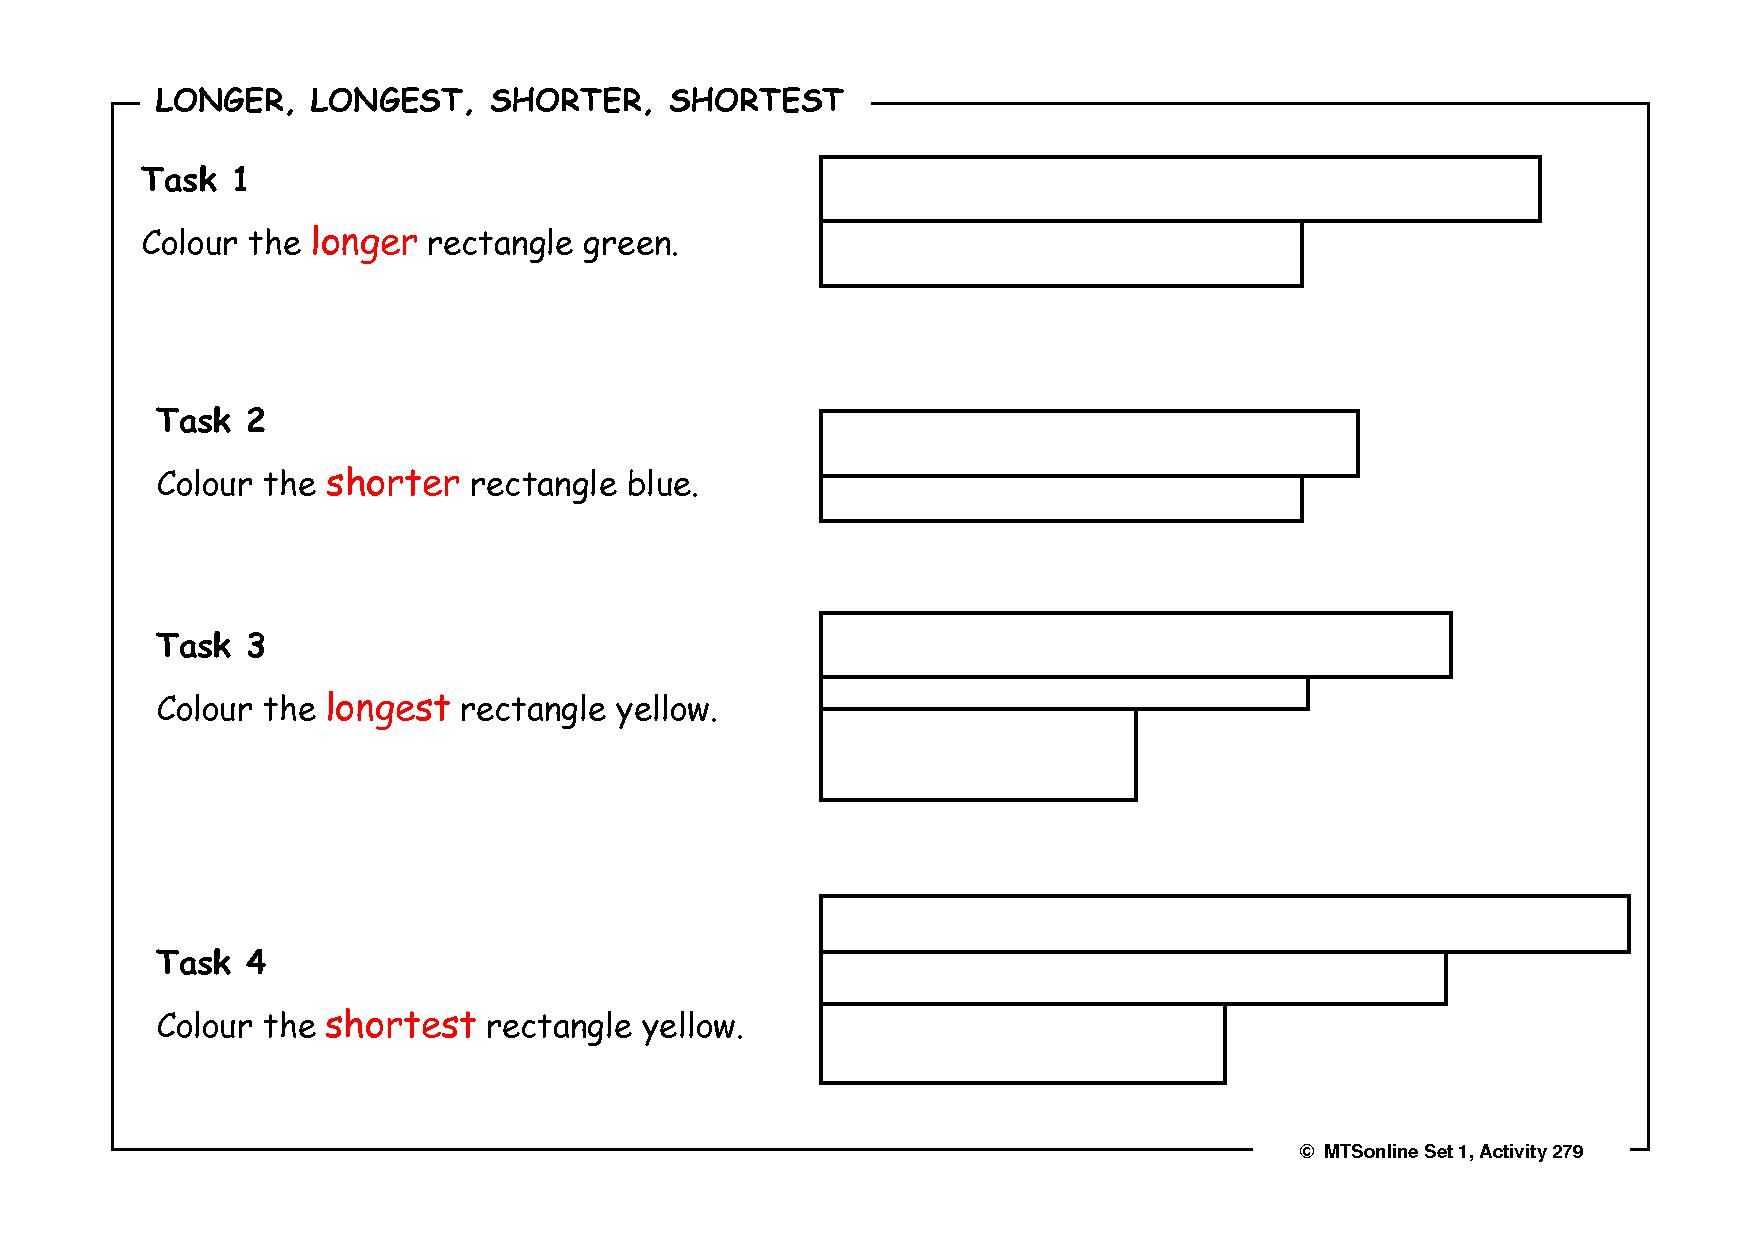 279longer_longest_shorter_shortest0001